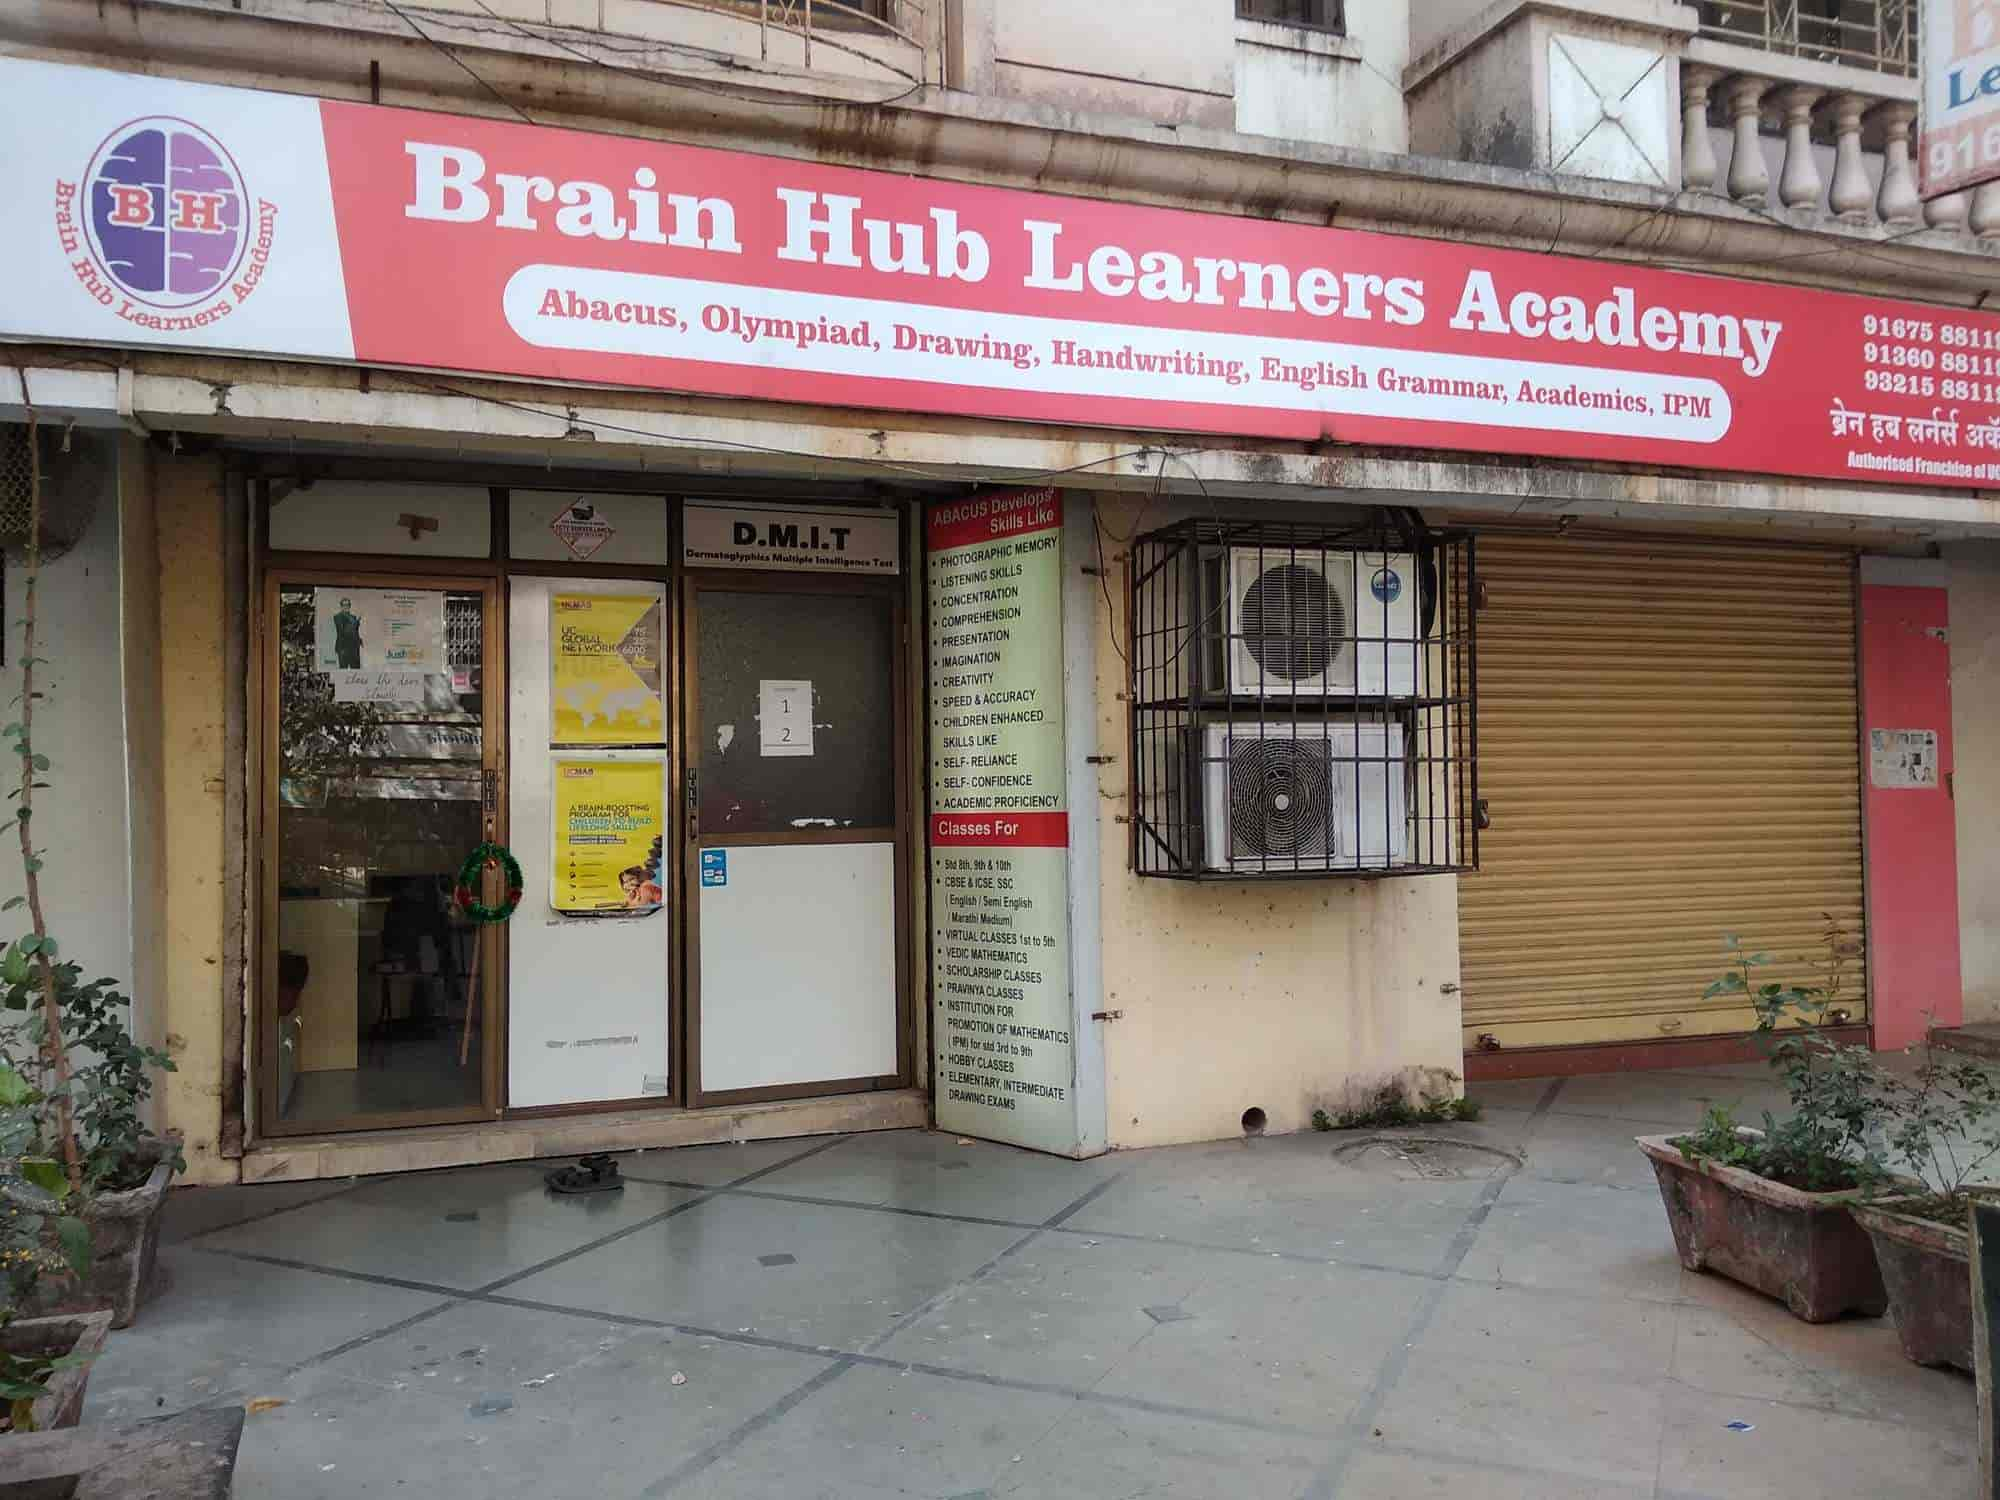 Top 50 Iq Test Centres in Dahisar - Best Iq Test Centers